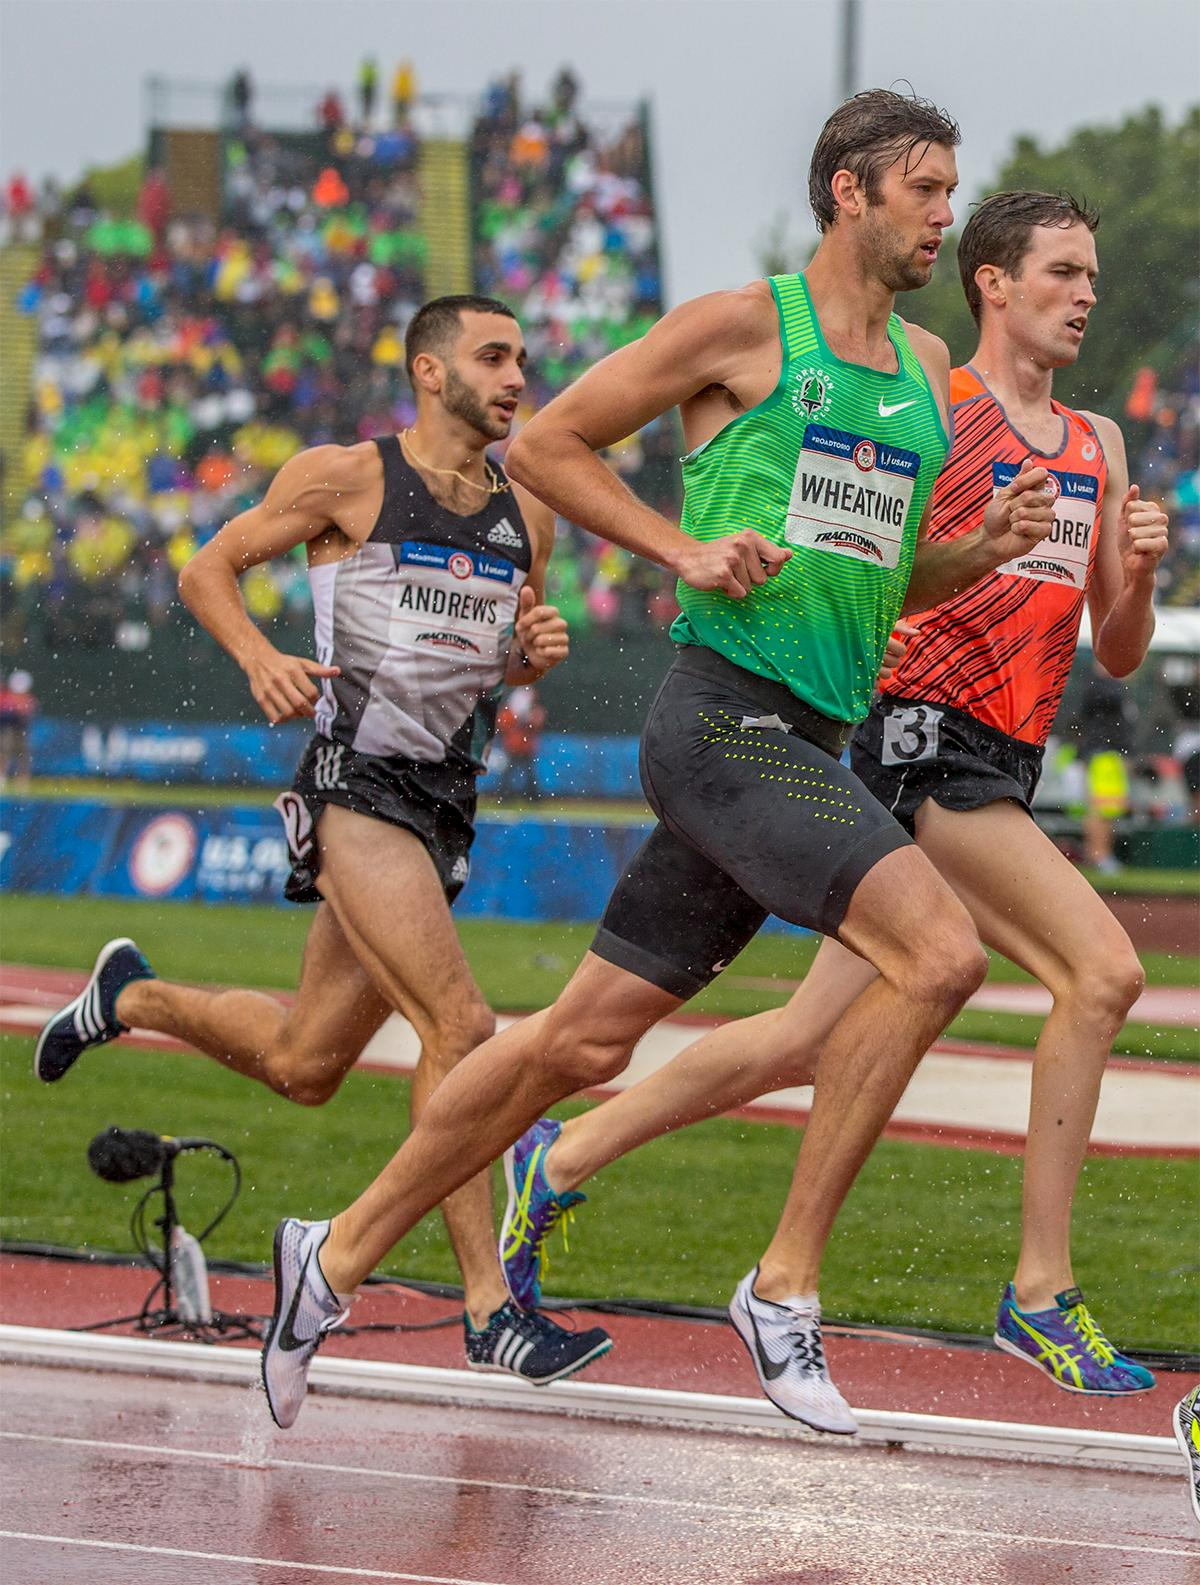 Nike OTC's Andrew Wheating races the 1,500 amidst a downpour. Wheating finished sixth overall with a time of 3:44.73 and qualified for the finals. Photo by August Frank, Oregon News Lab